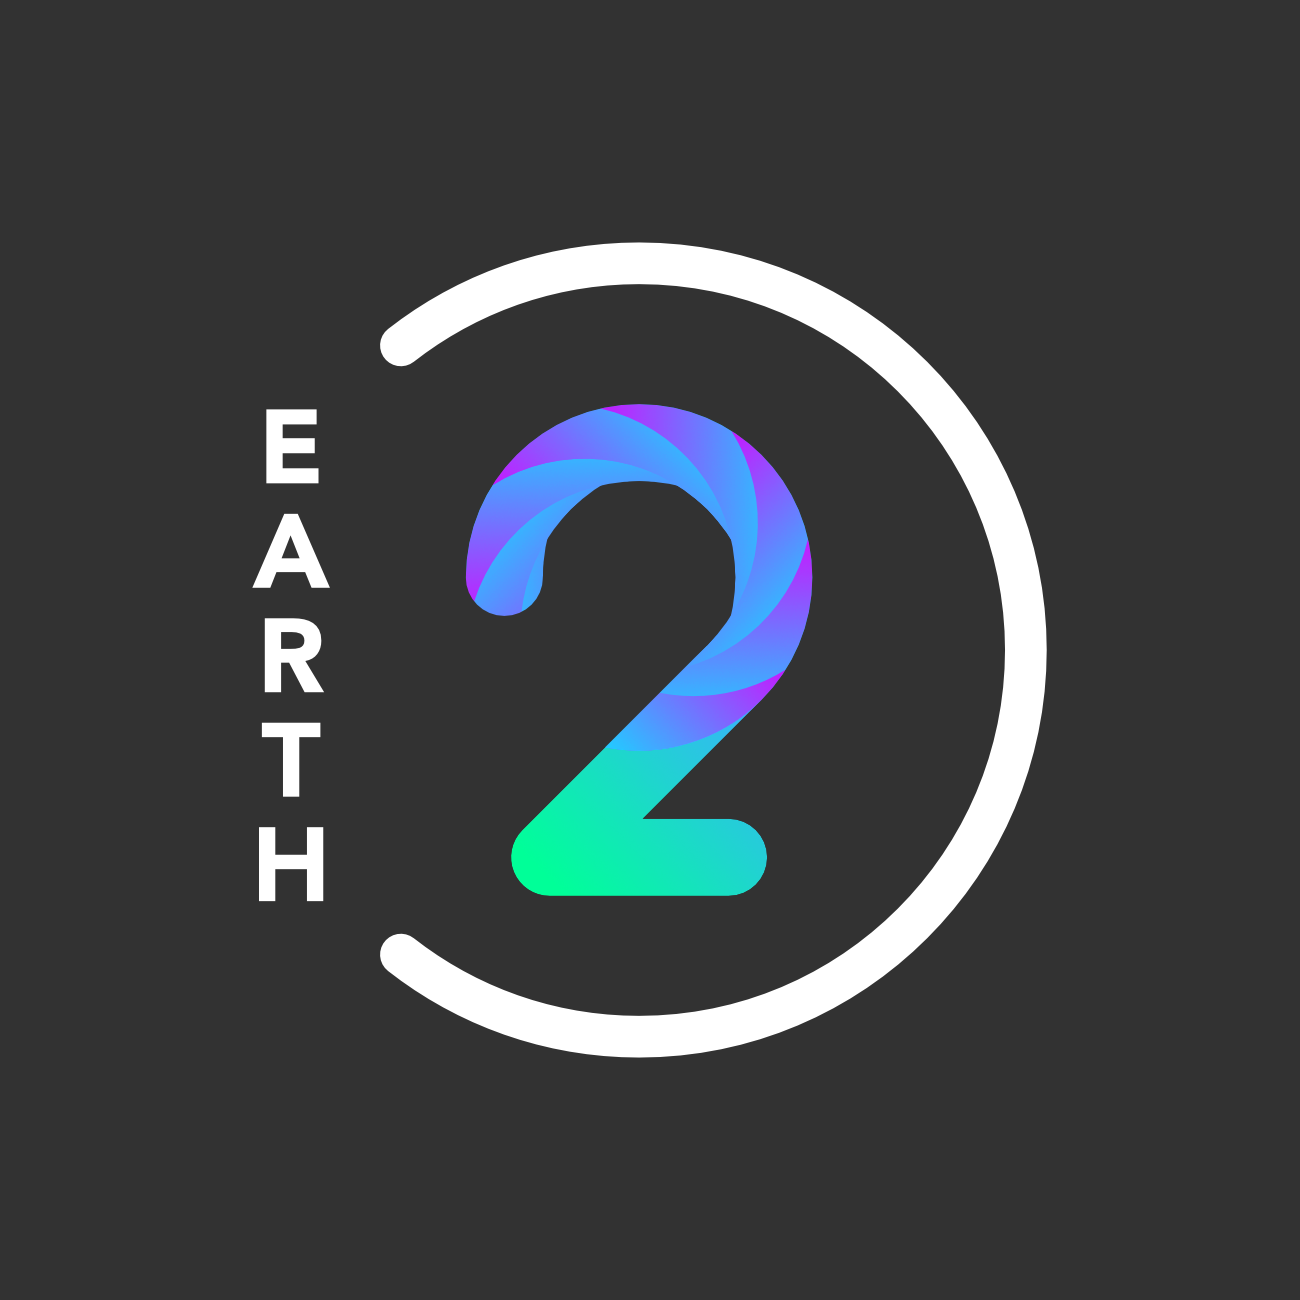 Earth2 Project Challenges Vaccines